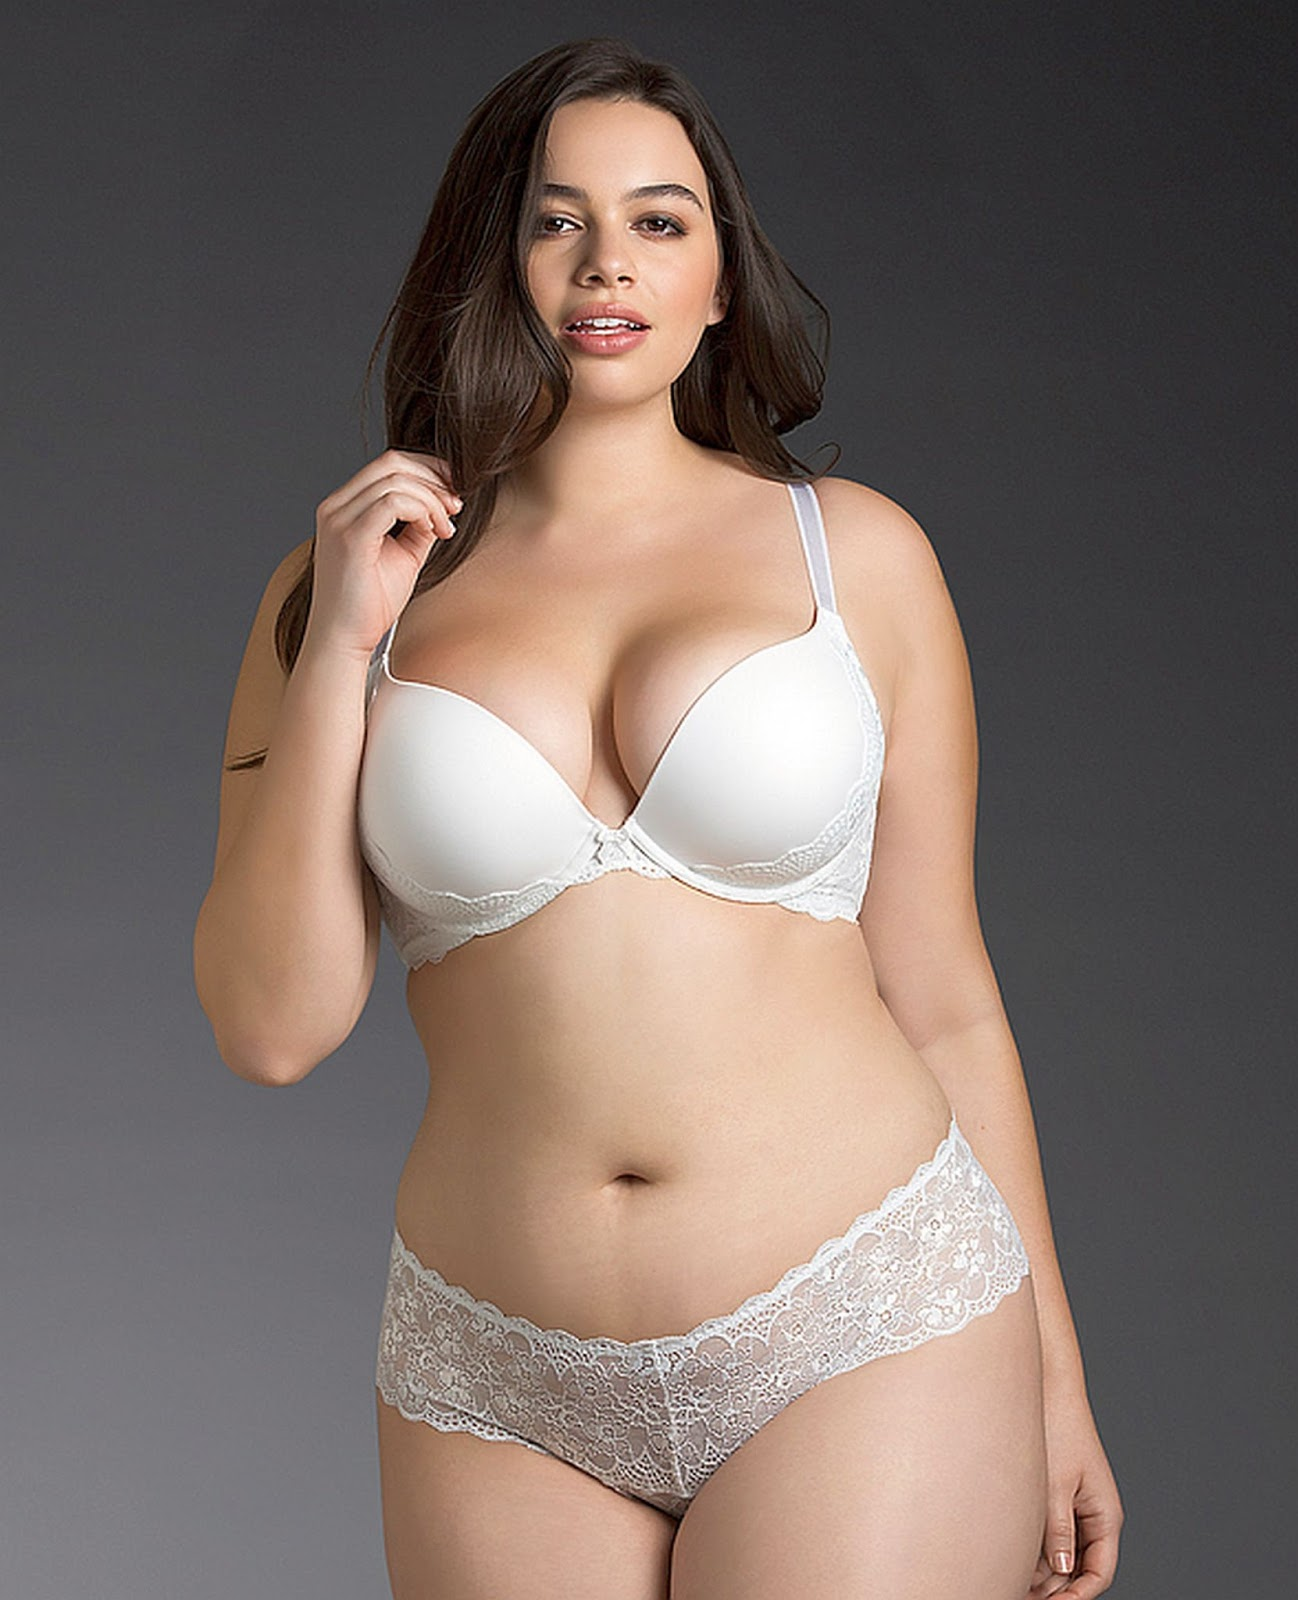 Get the best deals on plus size push up bras and save up to 70% off at Poshmark now! Whatever you're shopping for, we've got it.